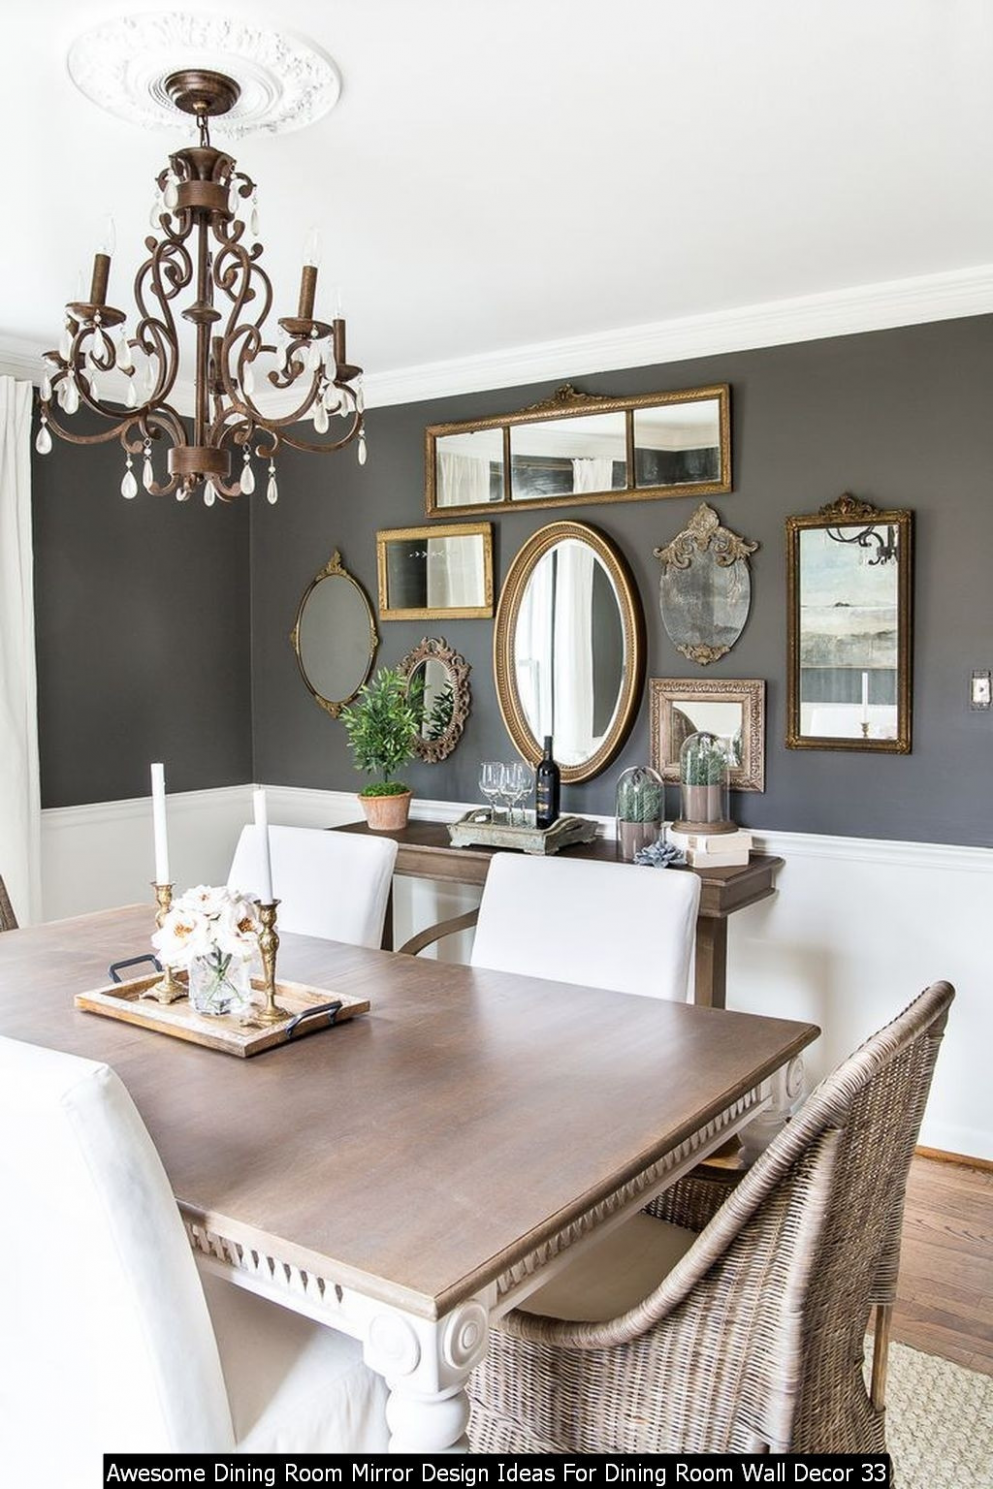 Dining Room Wall Decor Ideas Mirrors 9 Awesome Dining Room Mirror  - Dining Room Ideas With Mirrors